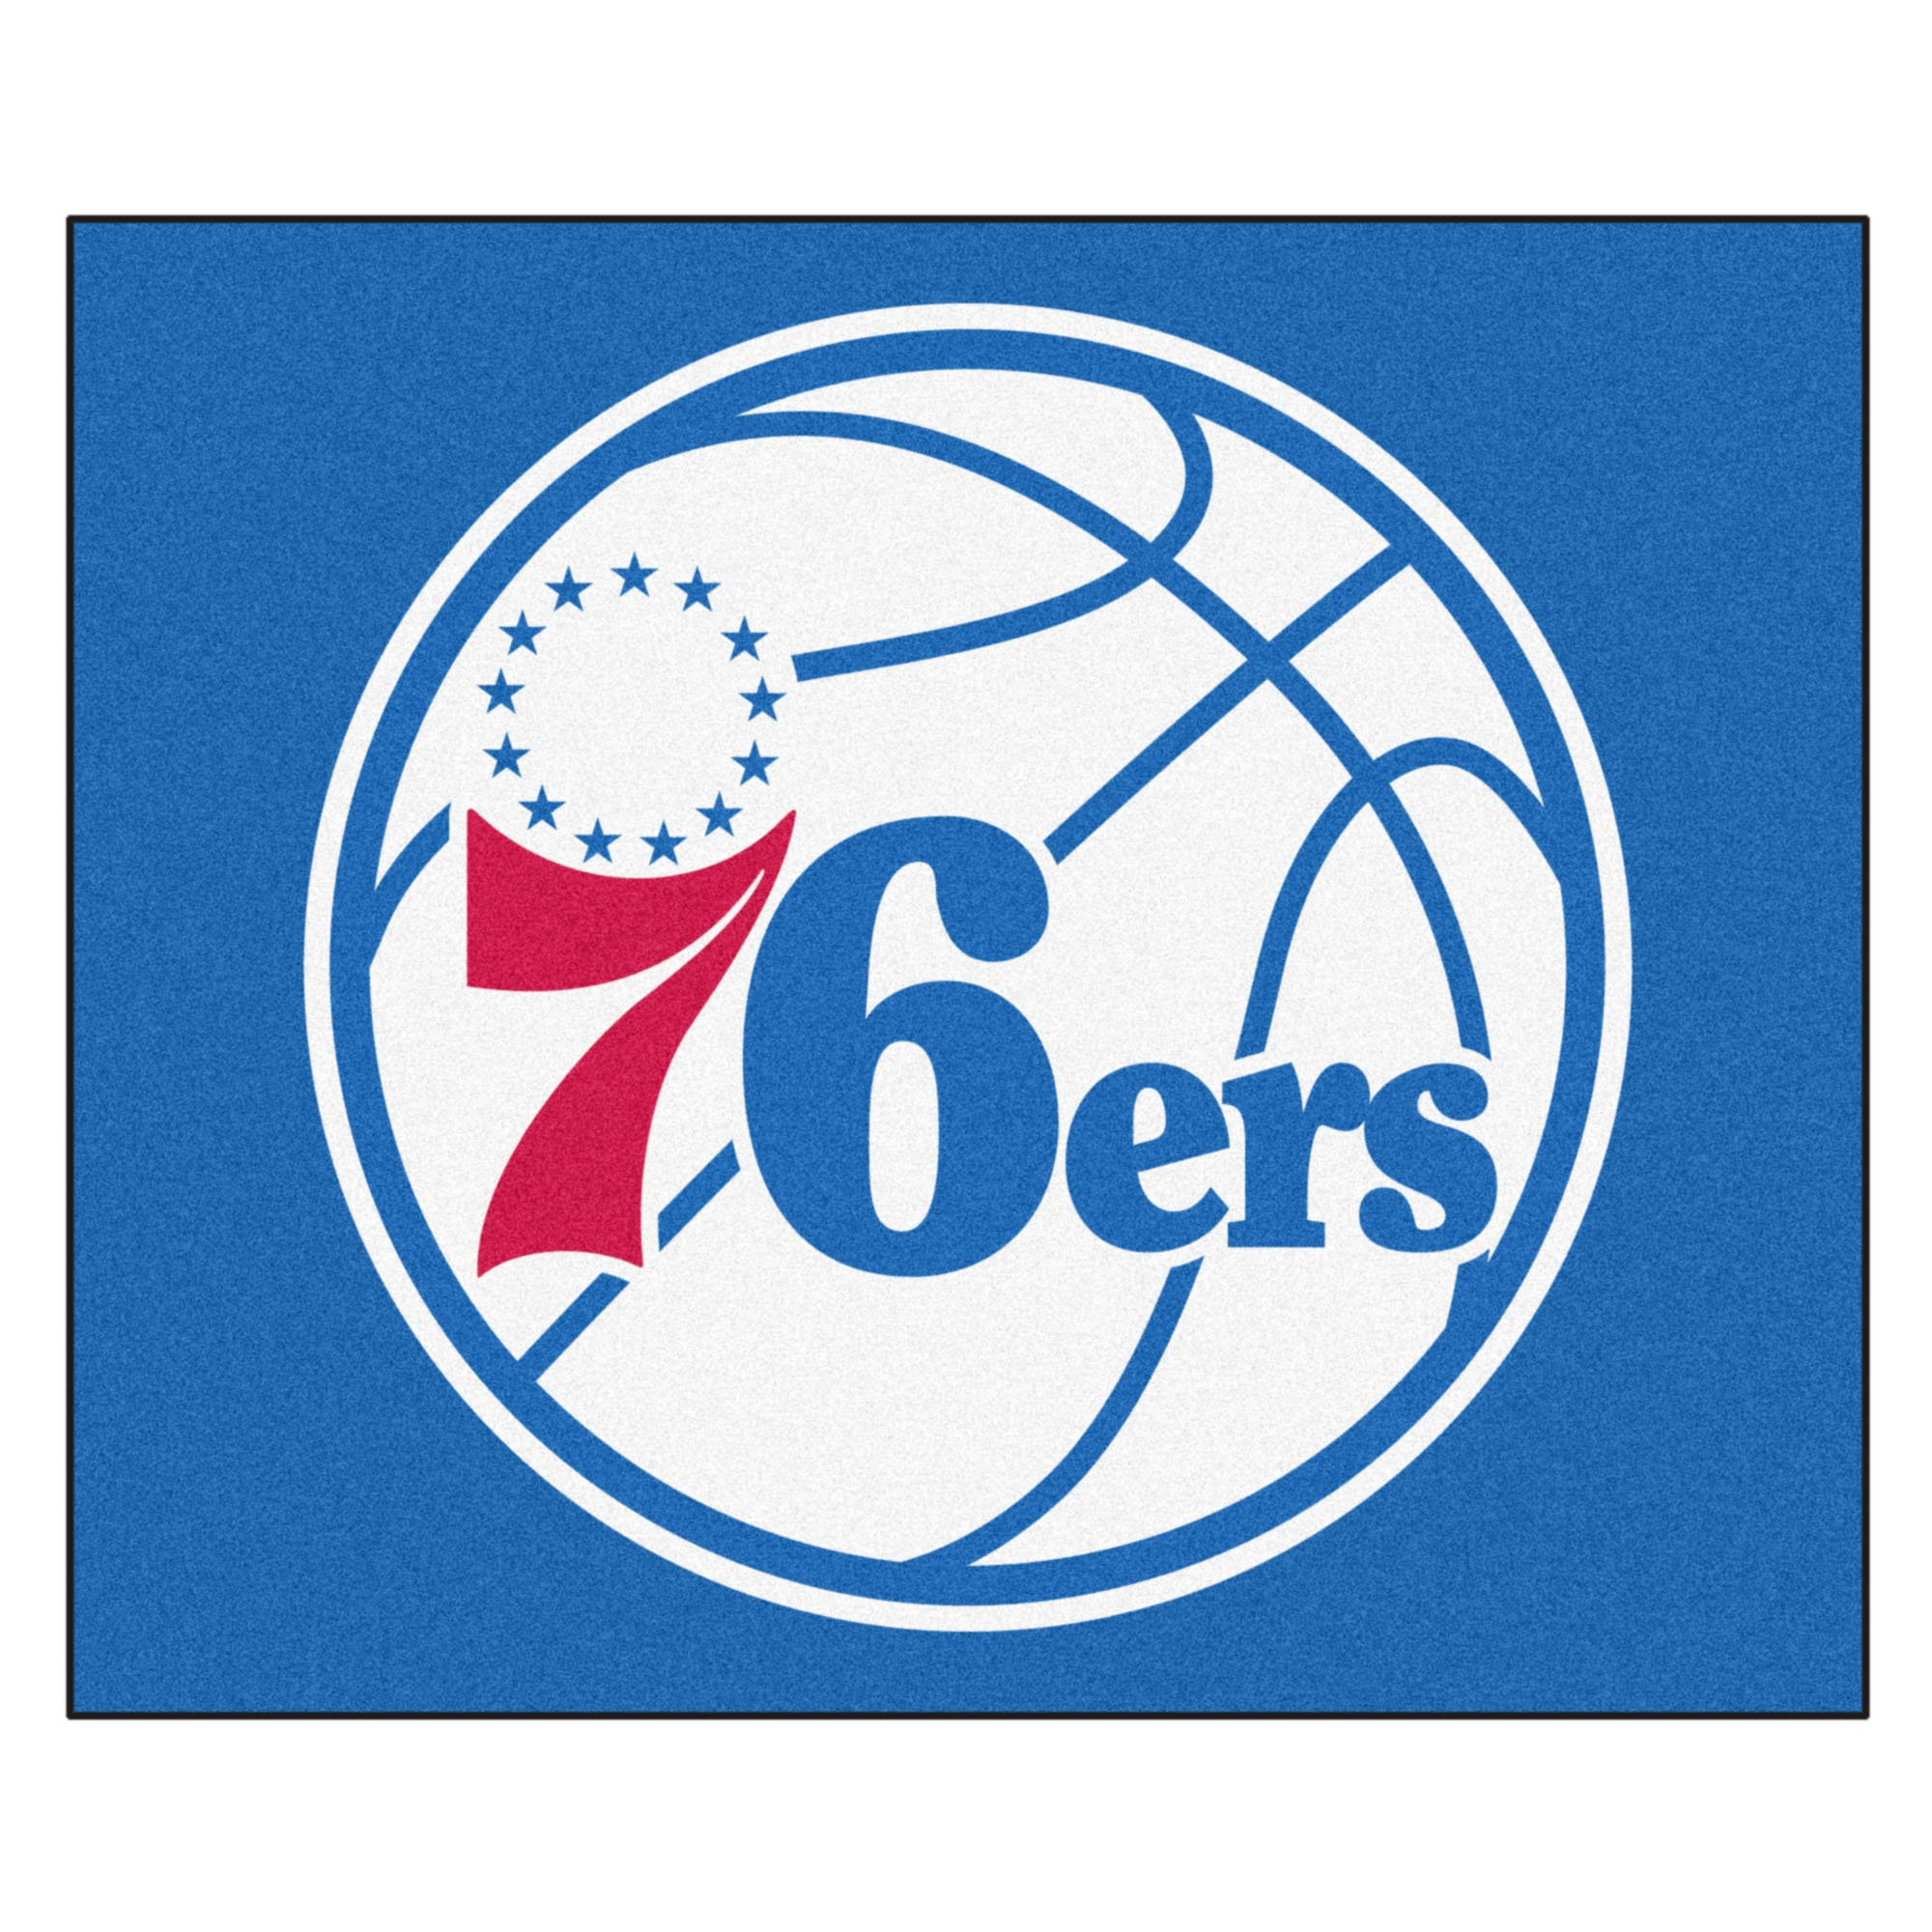 FANMATS 19468 NBA - Philadelphia 76ers Tailgater Rug , Team Color, 59.5''x71'' by Fanmats